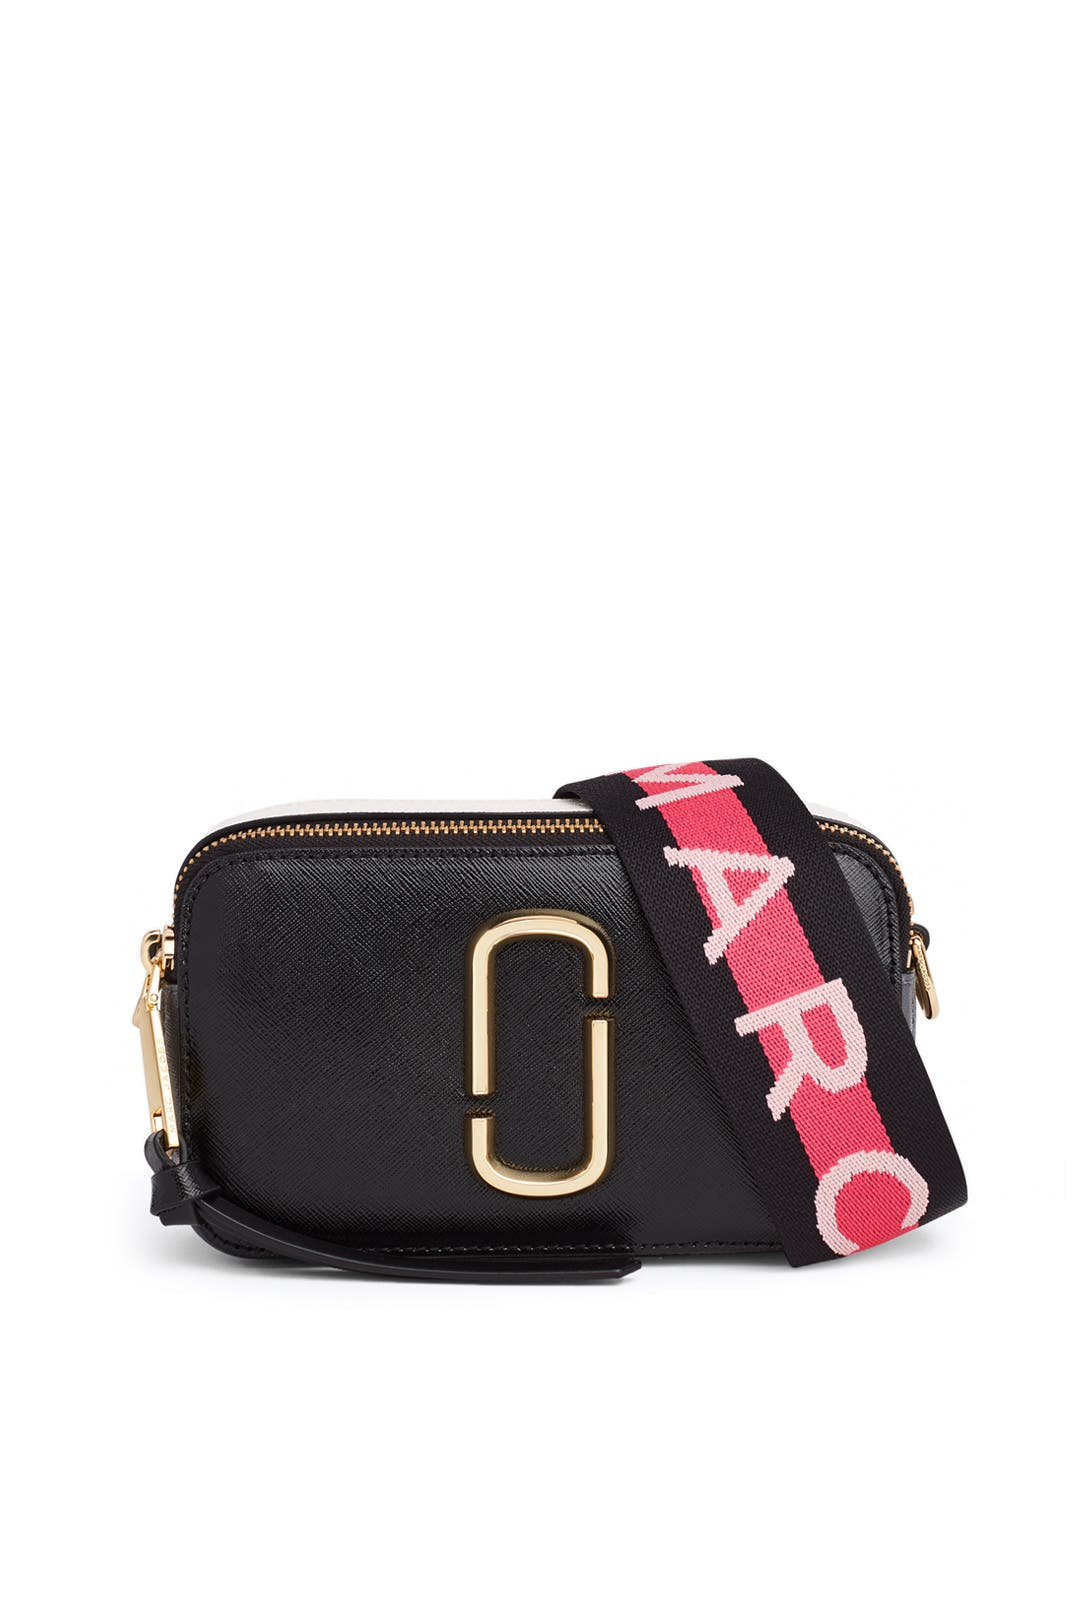 ebad1d7be Black Snapshot Crossbody by Marc Jacobs Handbags for $45 | Rent the ...